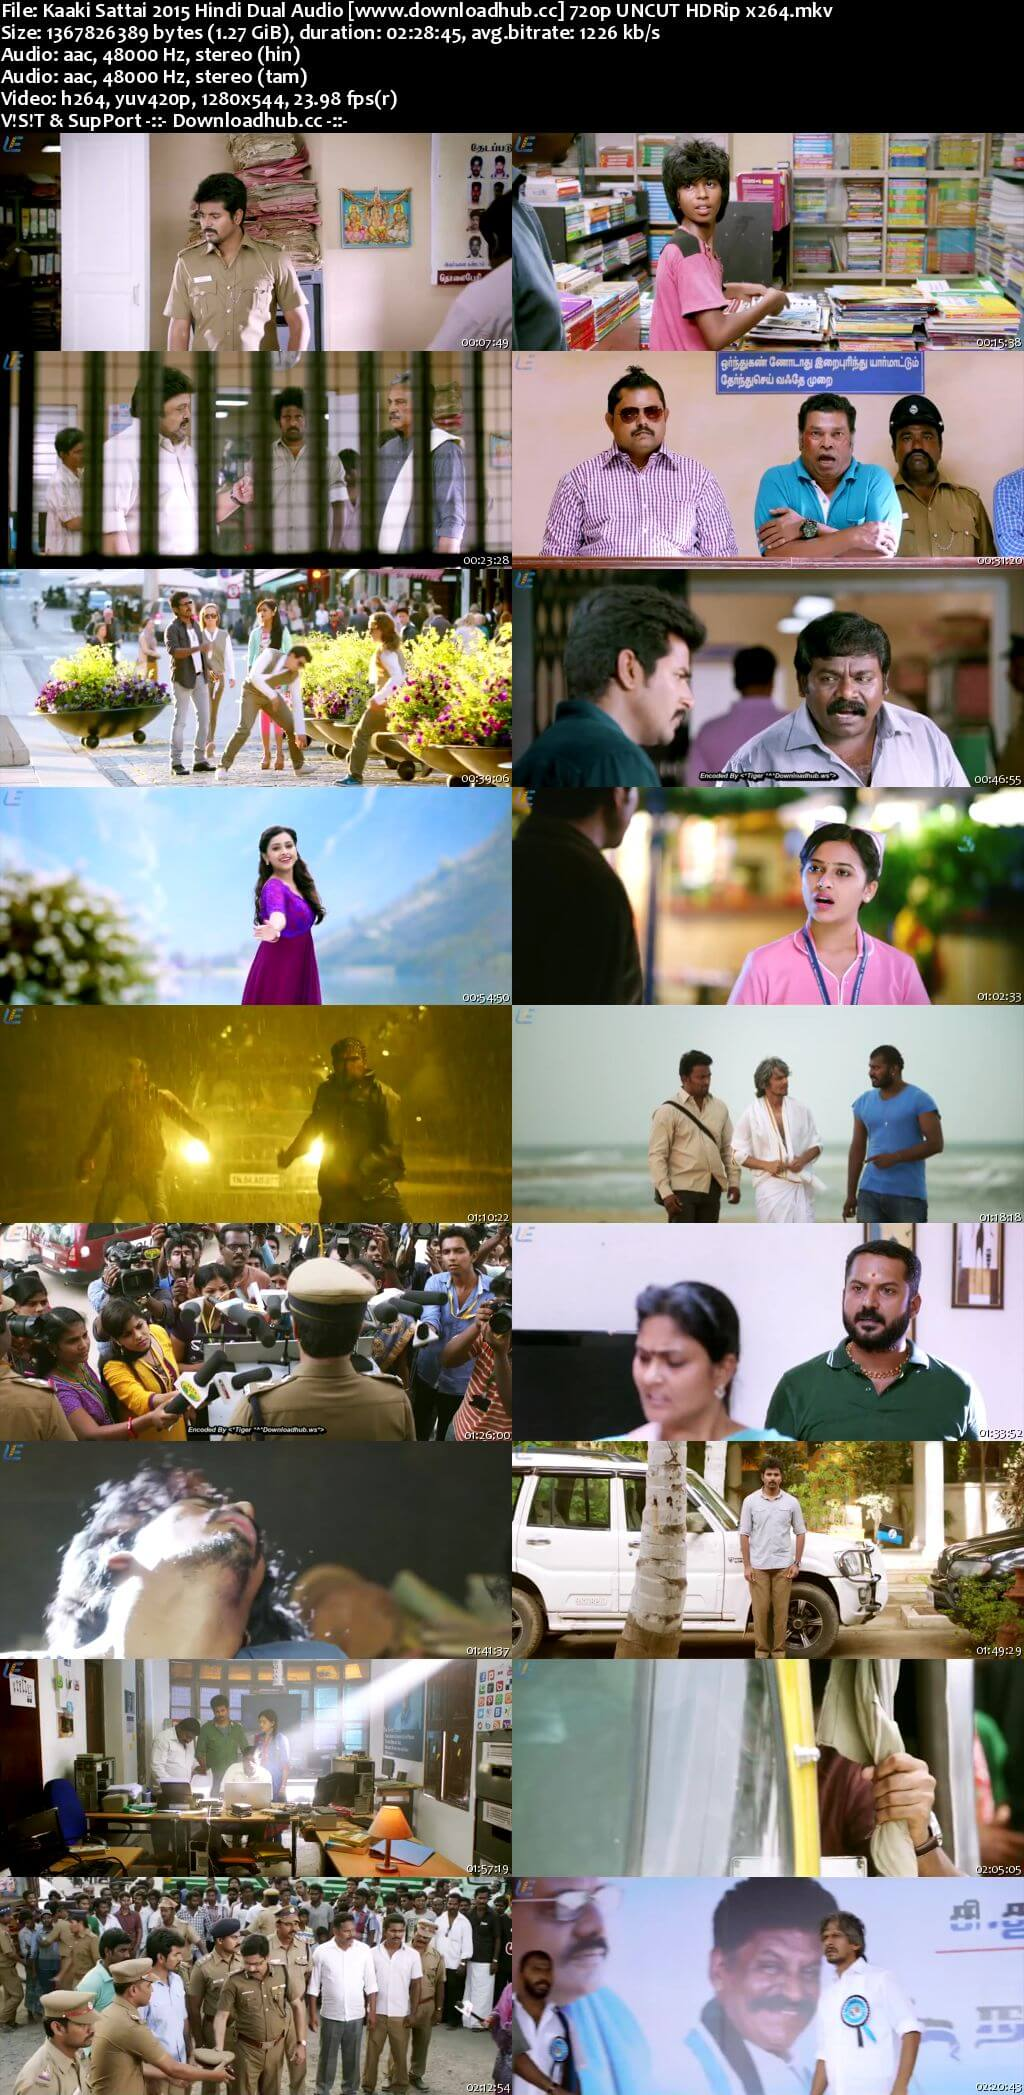 Kaaki Sattai 2015 Hindi Dual Audio 720p UNCUT HDRip x264